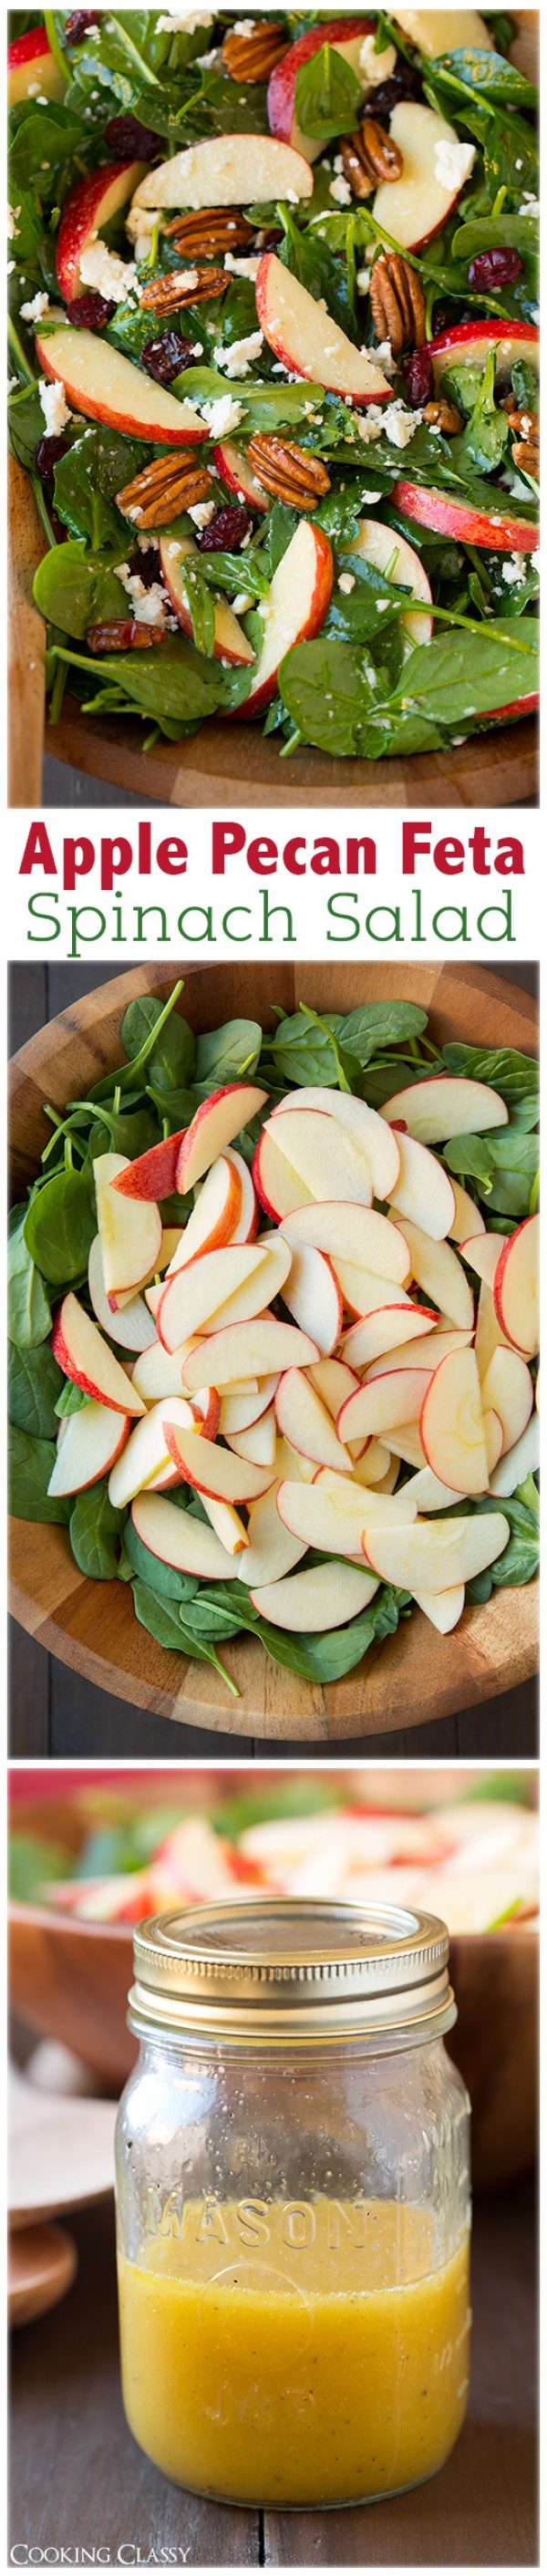 Get the recipe Apple Pecan Feta Spinach Salad @recipes_to_go